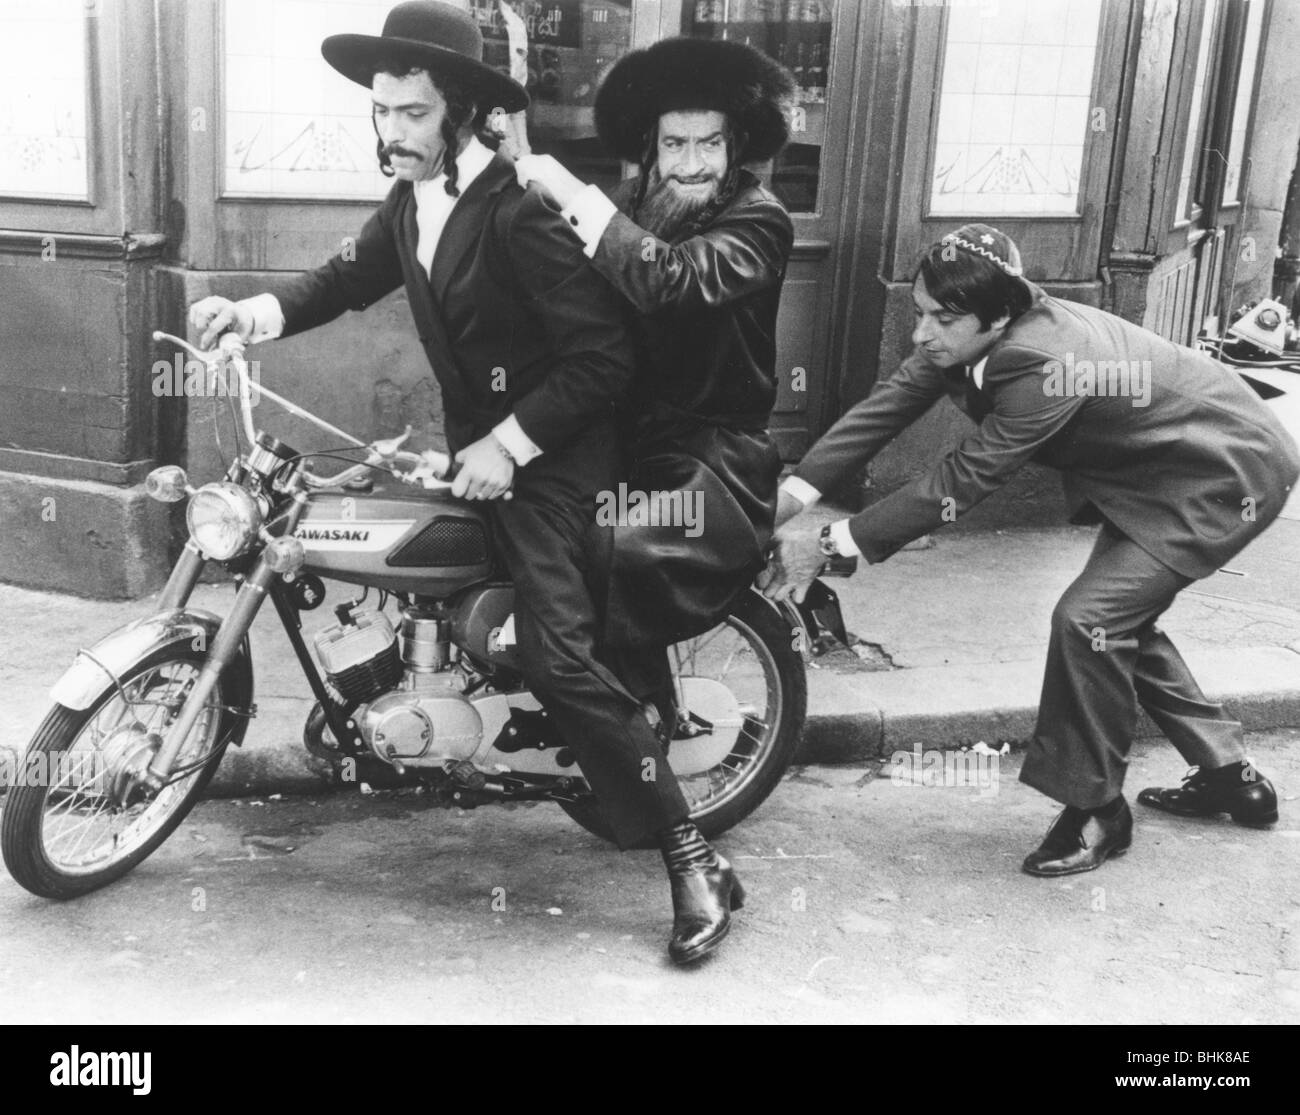 Motorbike chase scene from The Mad Adventures of Rabbi Jacob, 1973. - Stock Image